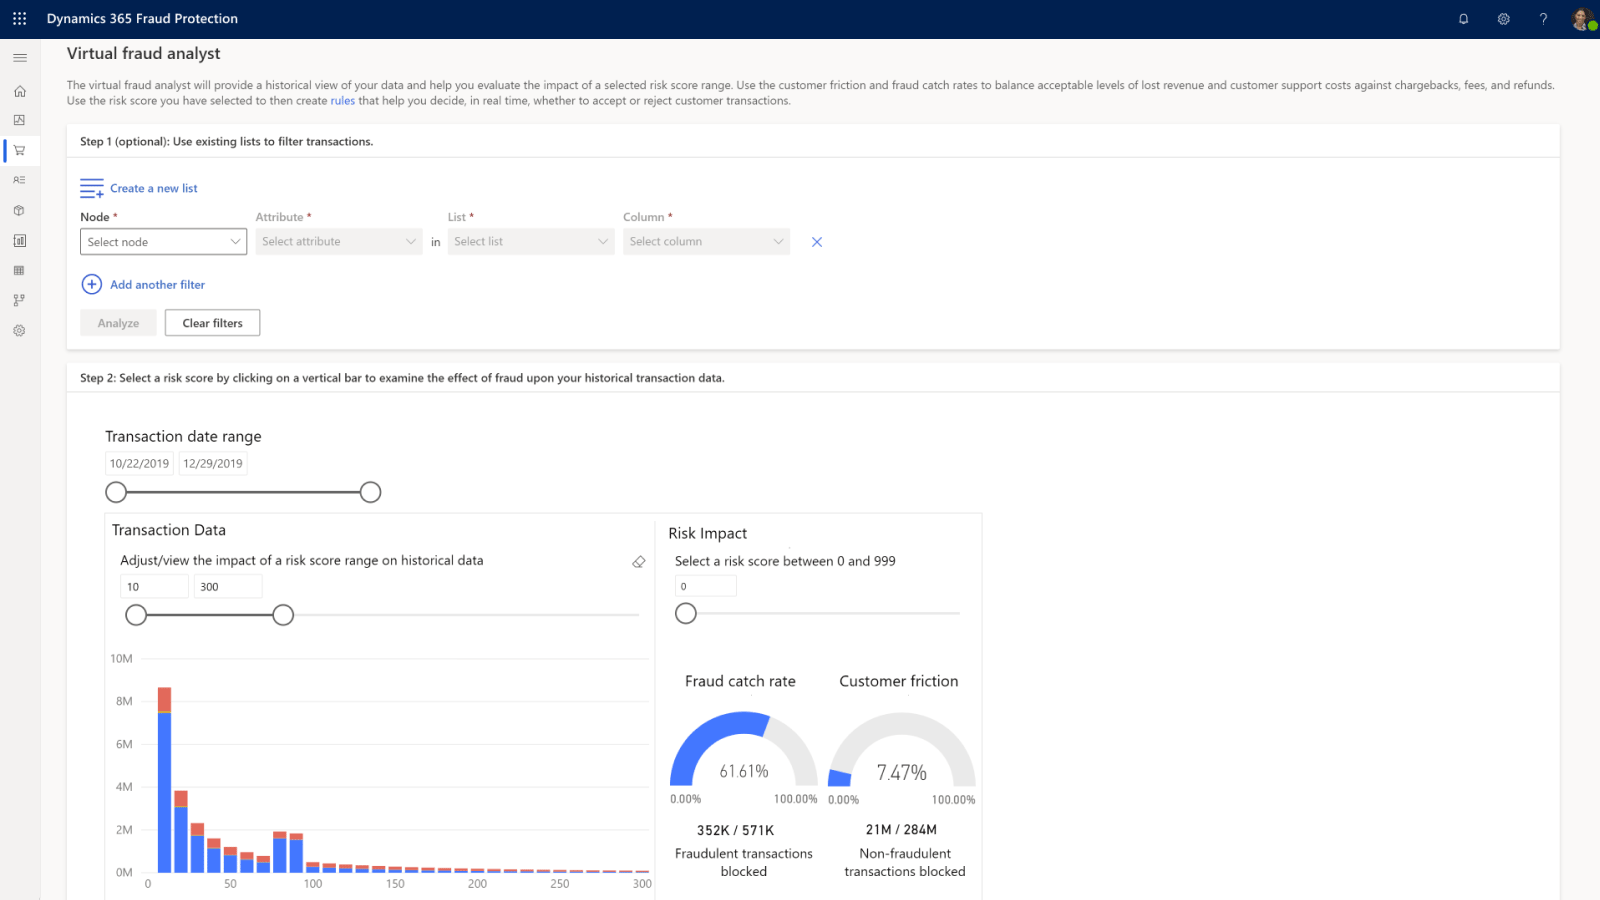 Dynamics 365 Fraud Protection の視覚化